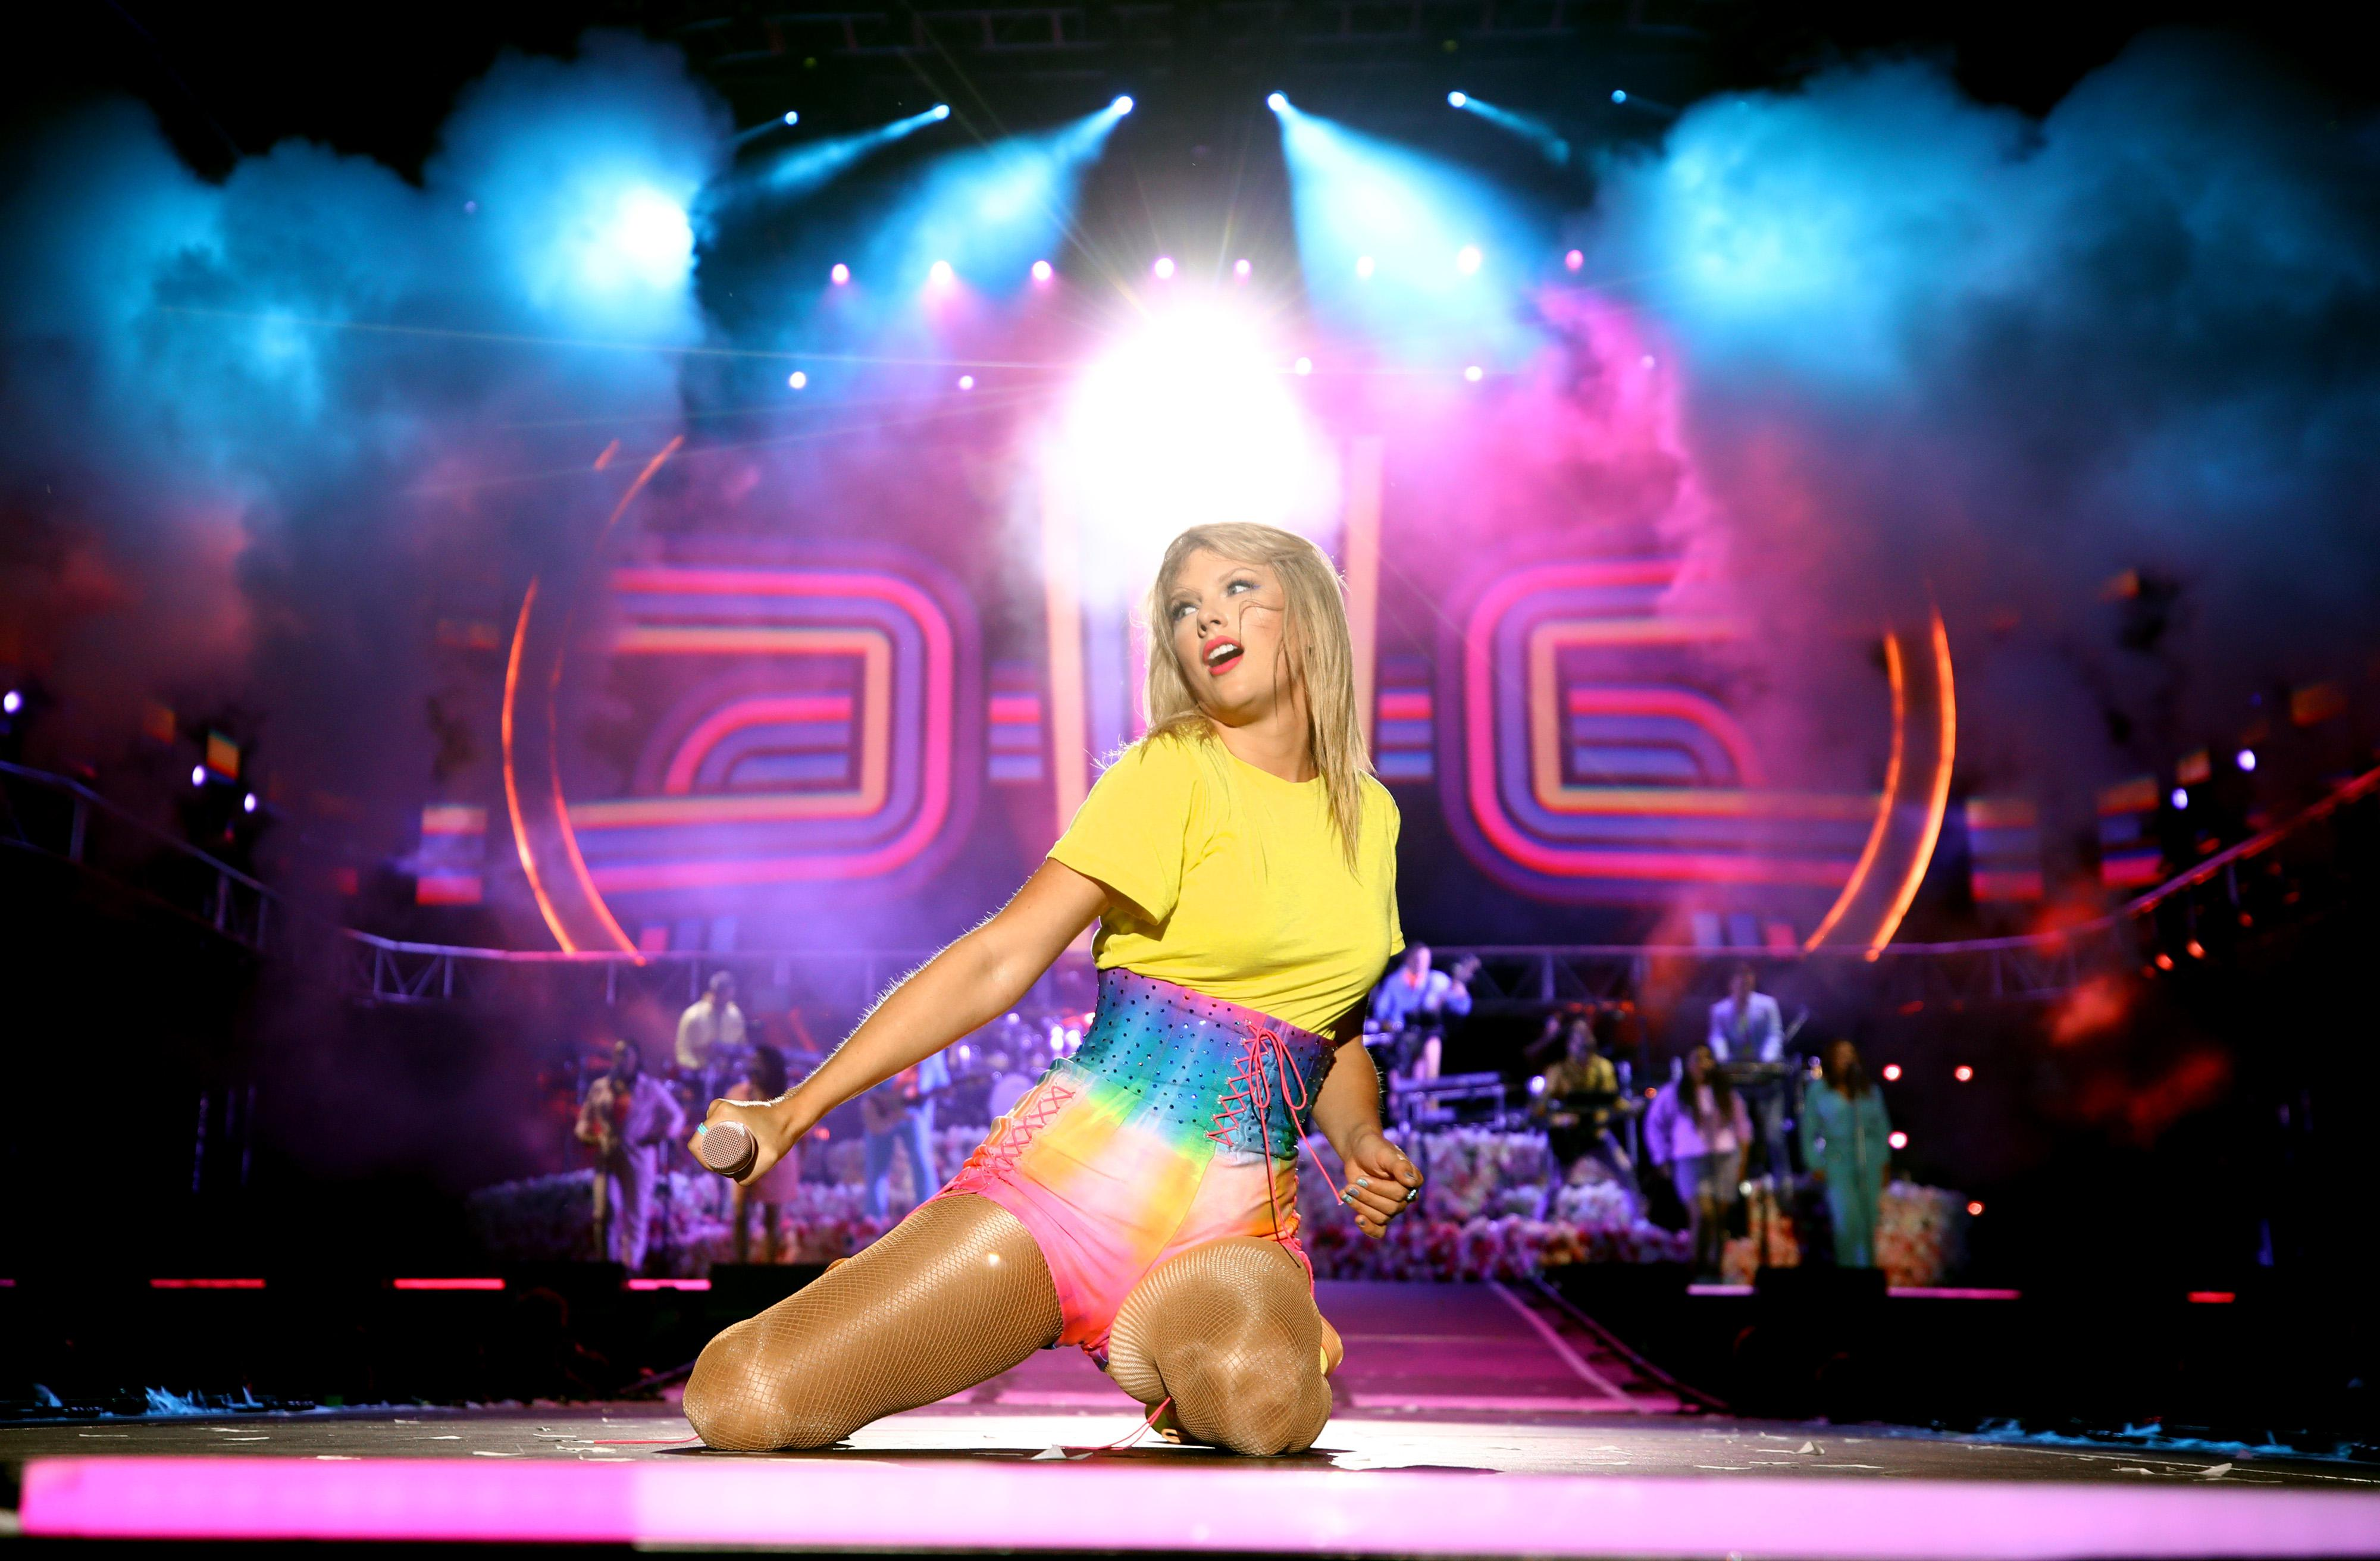 Hopelessly clumsy ally Taylor Swift performs onstage at 2019's Wango Tango in June.